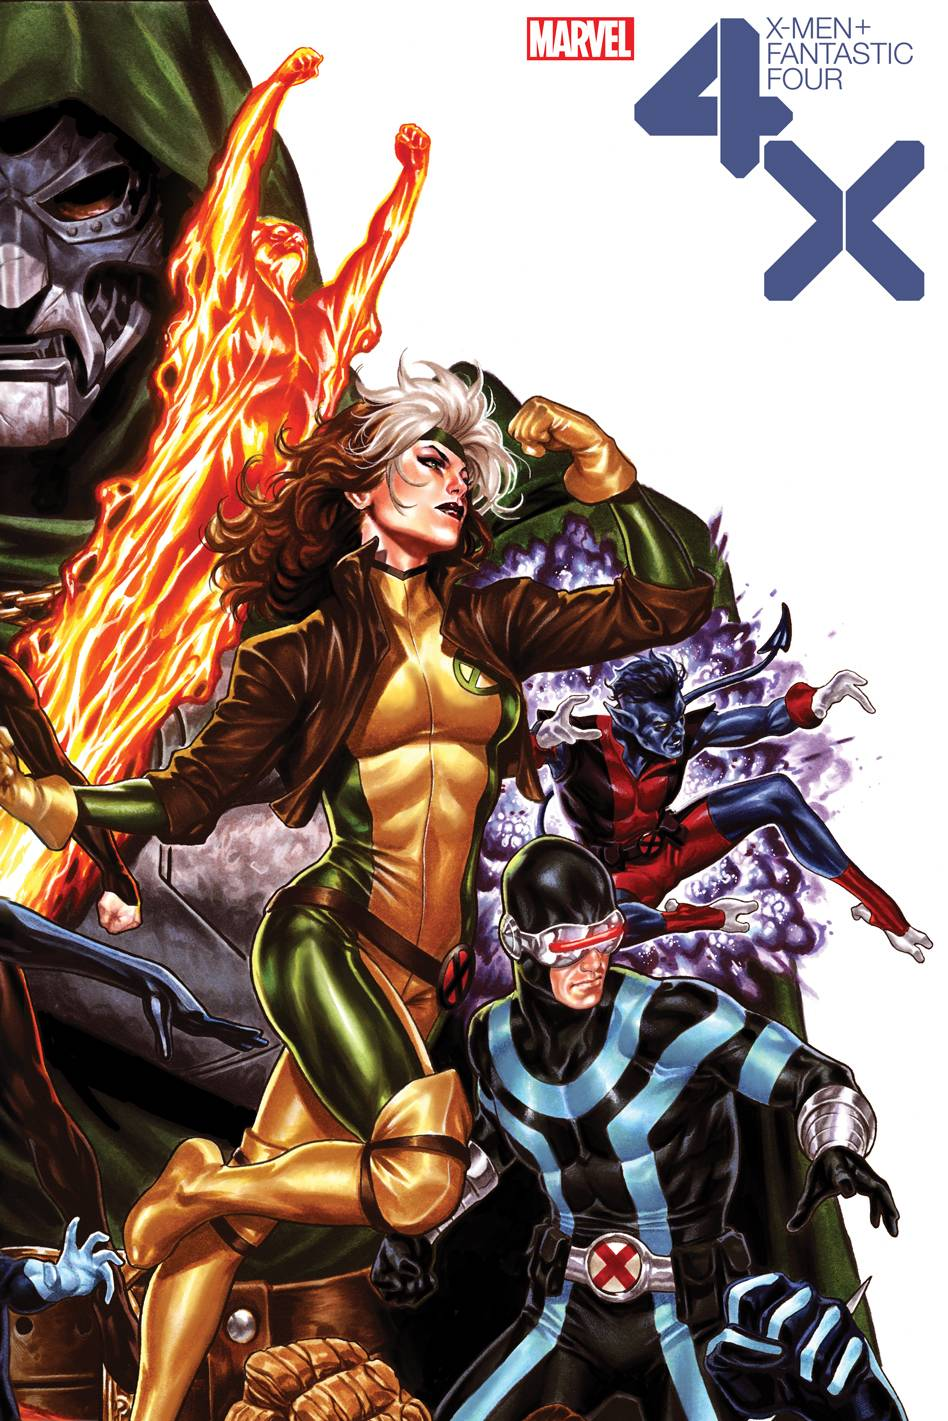 X-MEN FANTASTIC FOUR #2 (OF 4) BROOKS VAR